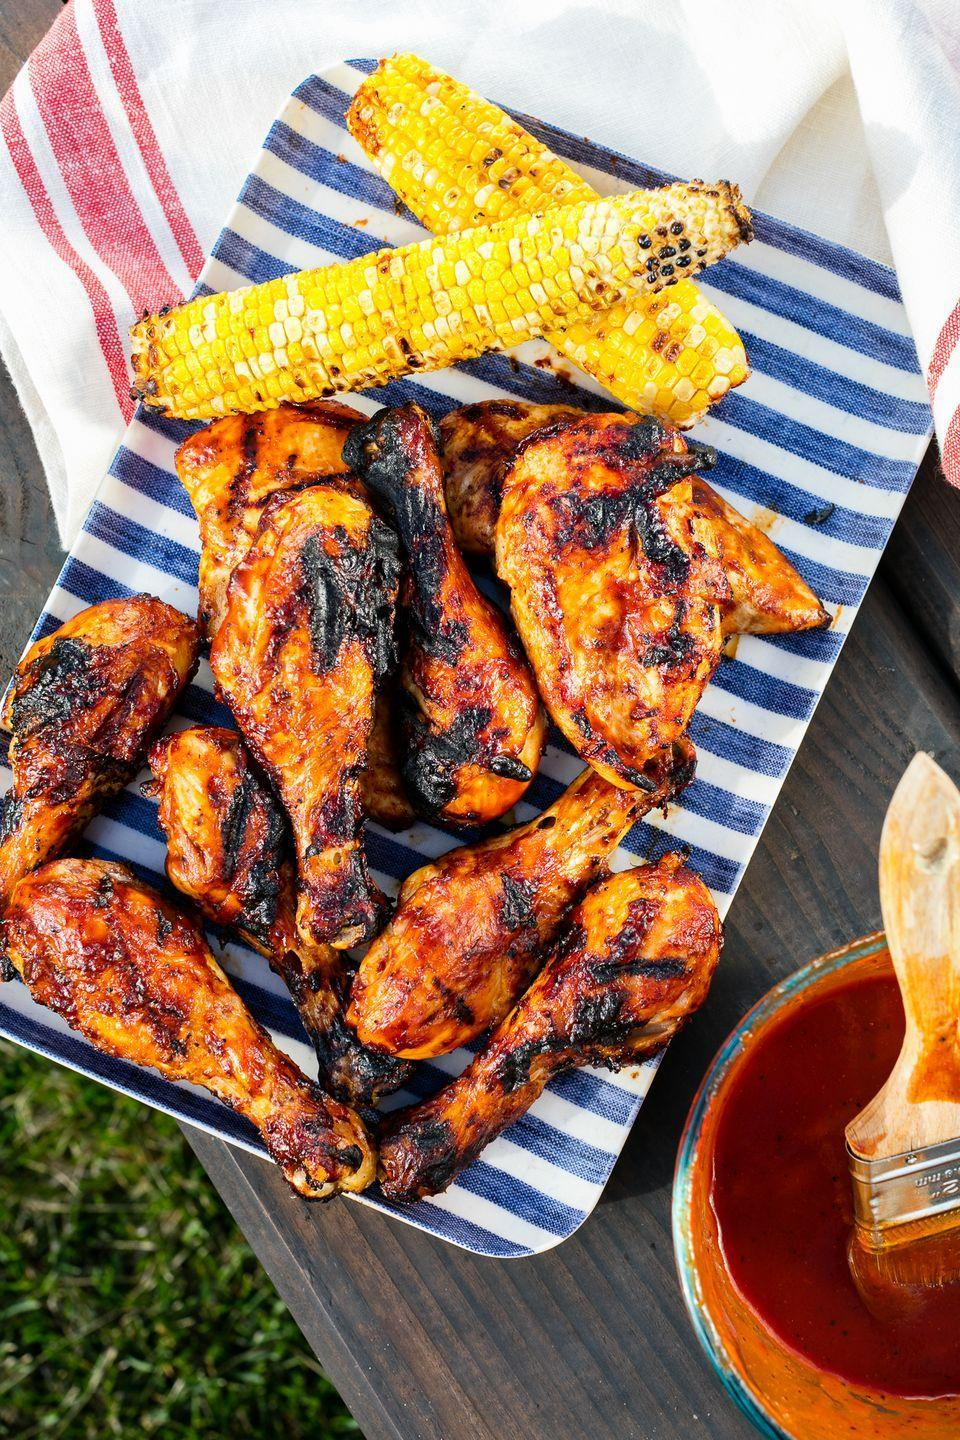 """<p>This cookout classic is a serious crowd-pleaser.</p><p>Get the recipe from <a href=""""https://www.delish.com/cooking/recipe-ideas/recipes/a47360/bbq-grilled-chicken-recipe/"""" rel=""""nofollow noopener"""" target=""""_blank"""" data-ylk=""""slk:Delish"""" class=""""link rapid-noclick-resp"""">Delish</a>.</p>"""